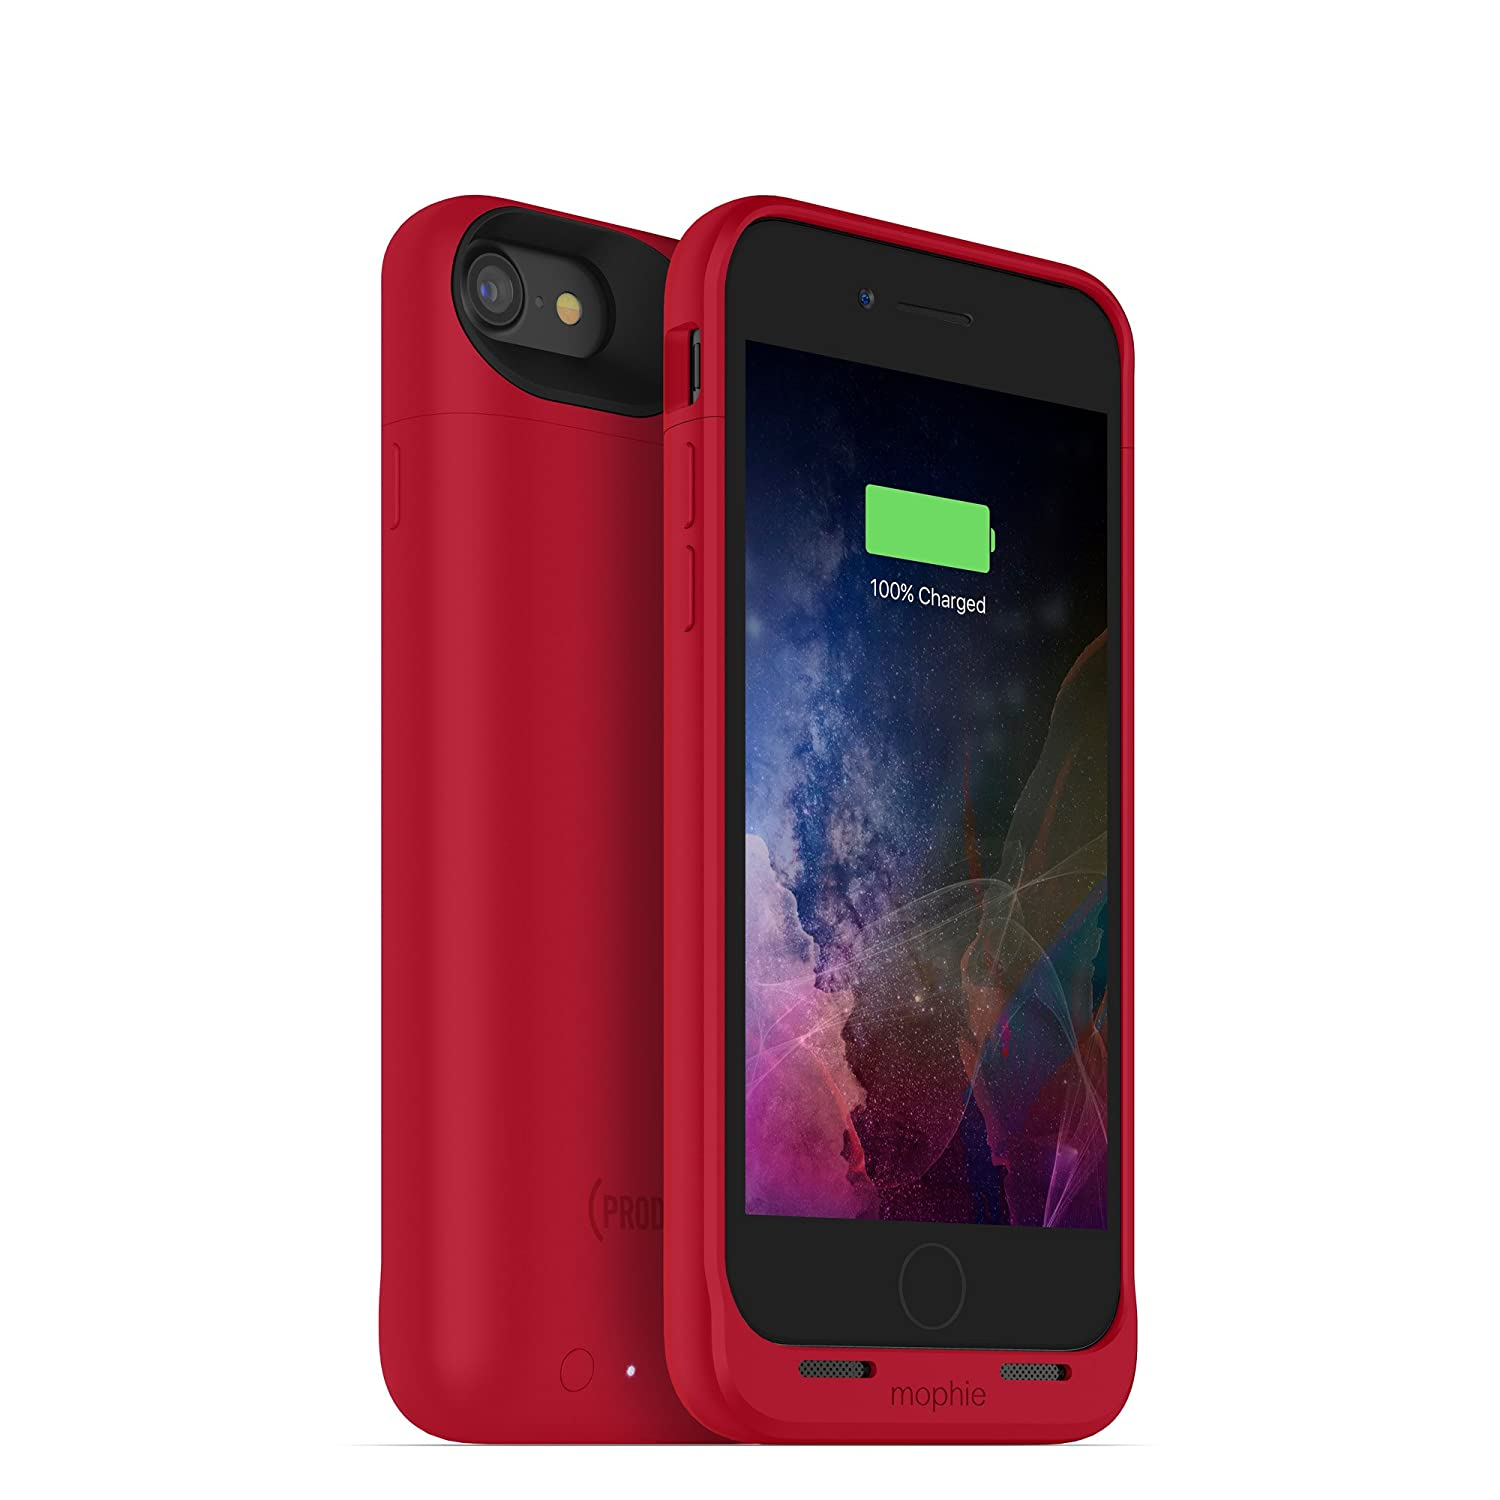 mophie juice pack Air - Slim Protective Battery Case for Apple iPhone 7 (PROJECT RED) - Red 3783_JPA-IP7-PRD